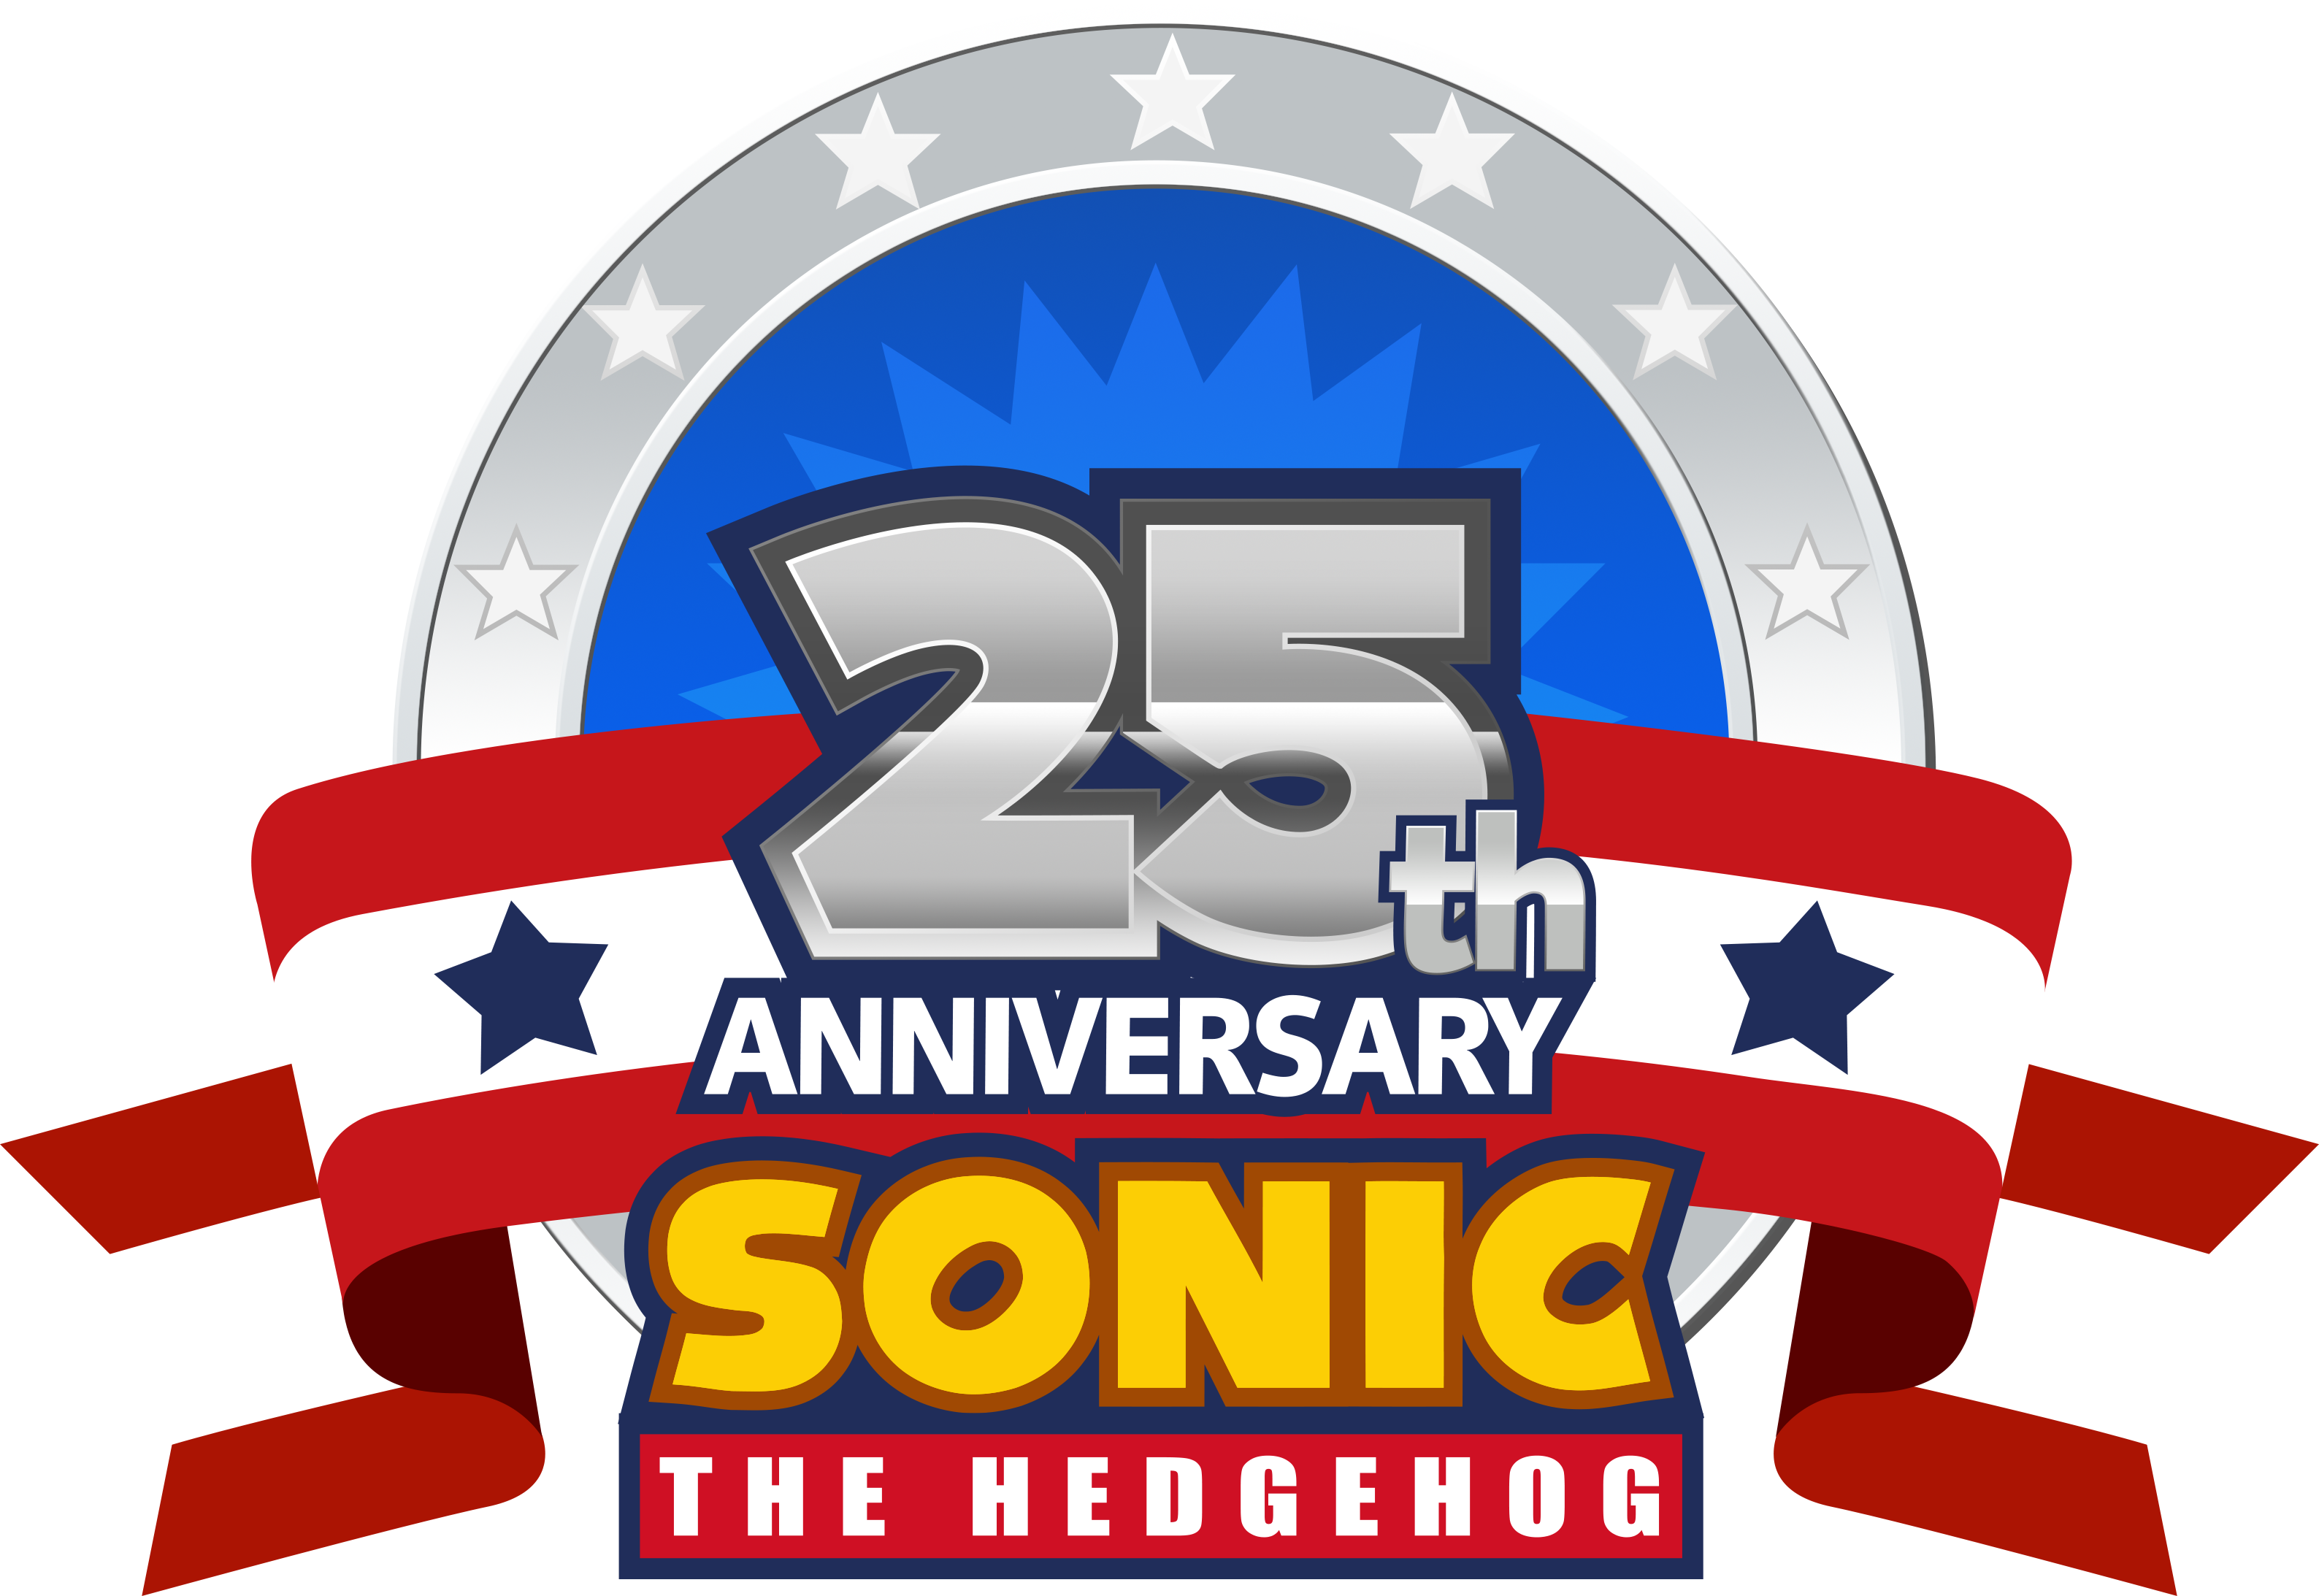 sonic s 25th anniversary 2016 logo by nuryrush on deviantart 25th Work Anniversary Clip Art 25th Anniversary Backgrounds